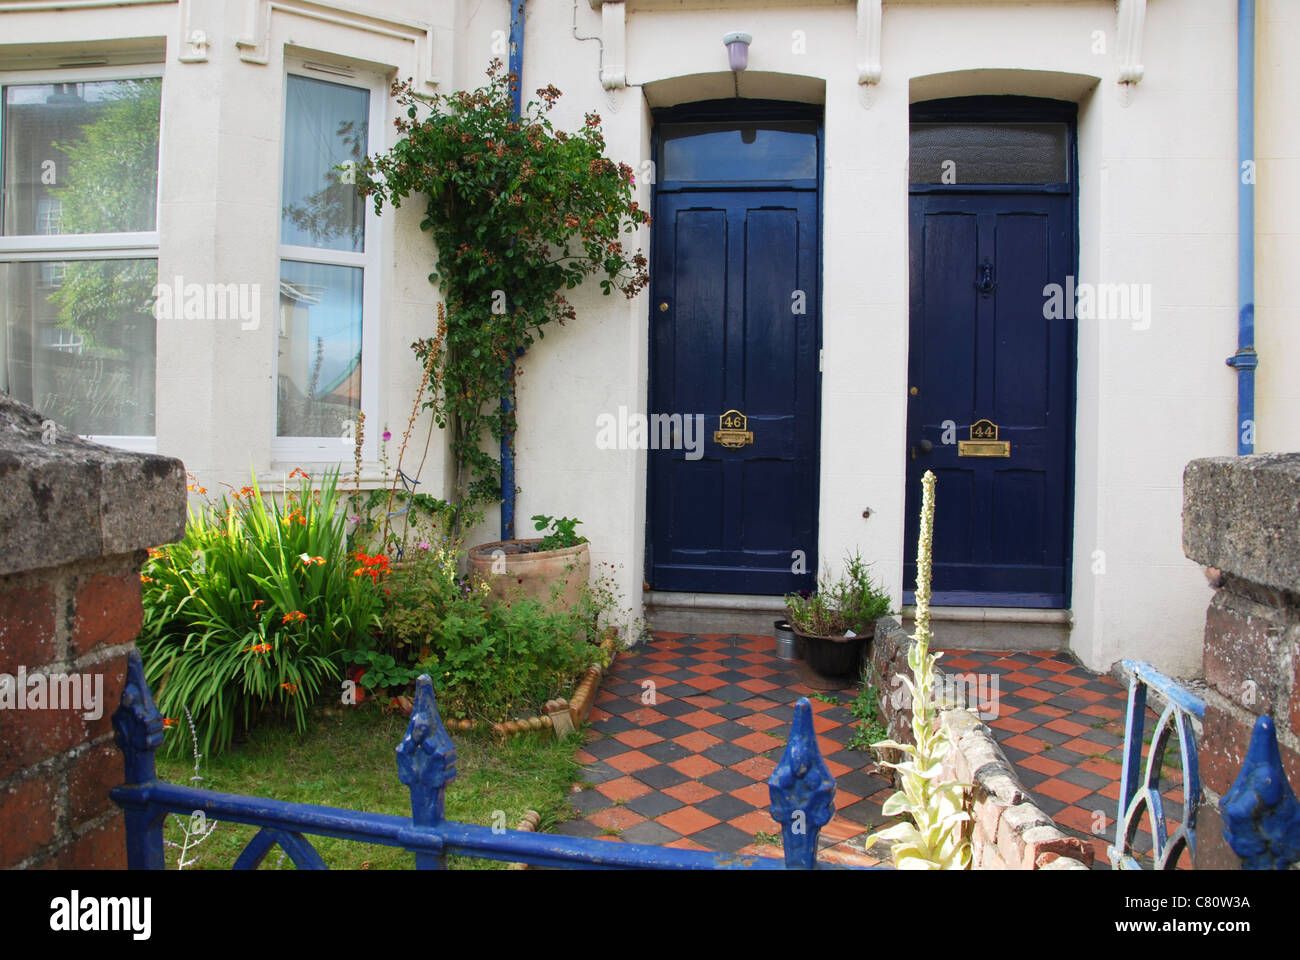 front doors with checkered path Moretonhampstead England - Stock Image